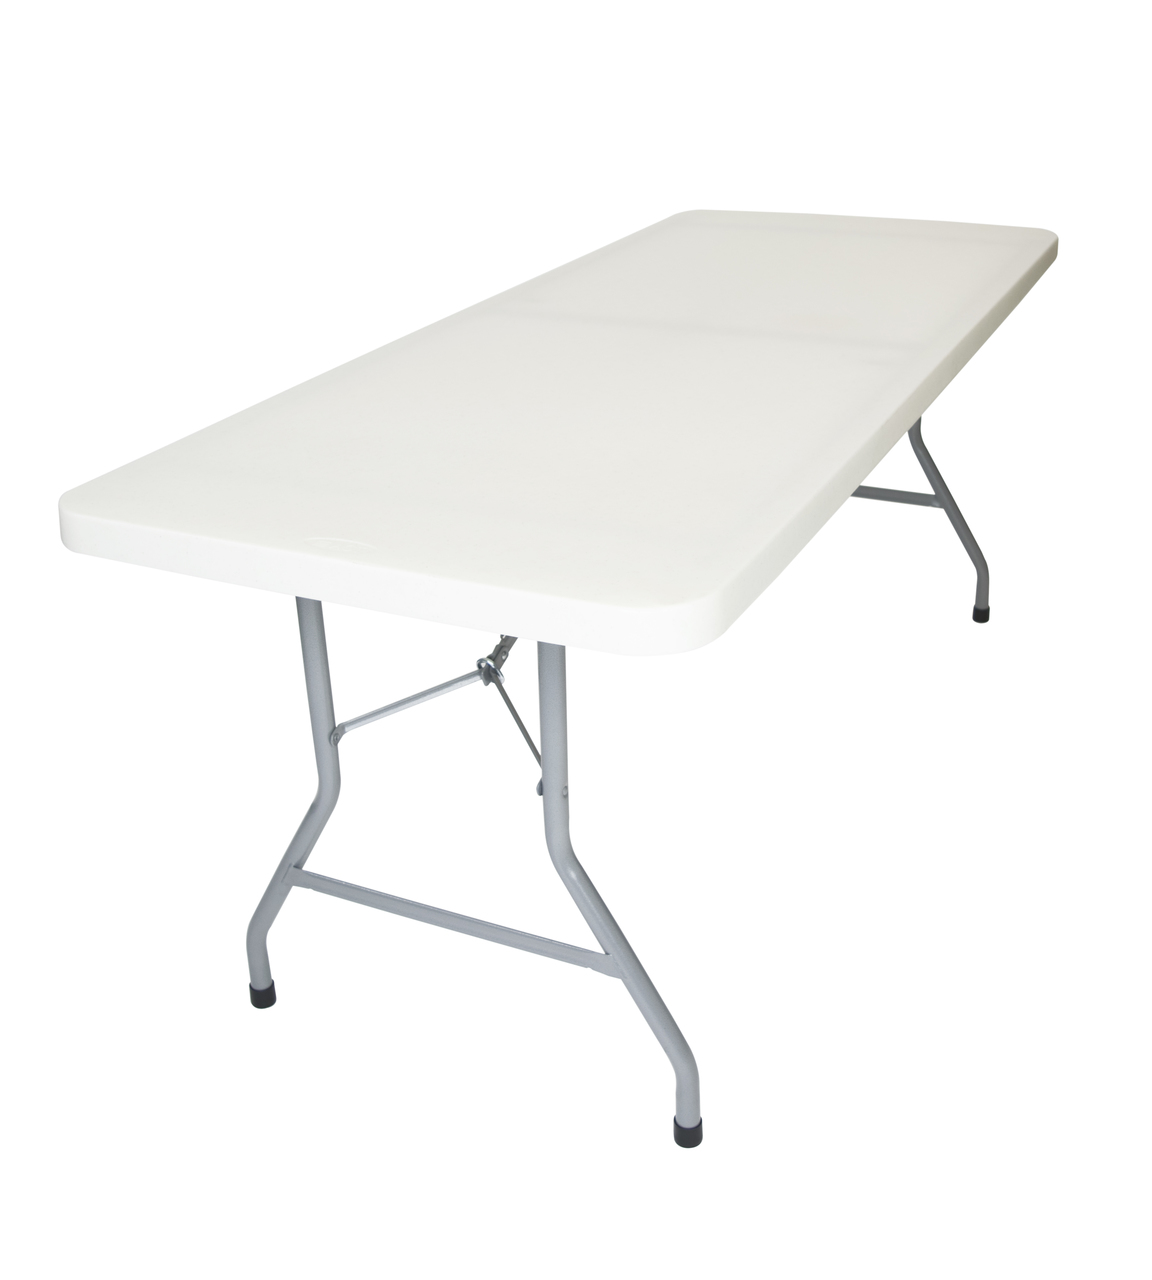 Astounding Rhinolite 30X72 6 Ft Rectangle Plastic Folding Table Solid One Piece Top Locking Steel Frame Squirreltailoven Fun Painted Chair Ideas Images Squirreltailovenorg